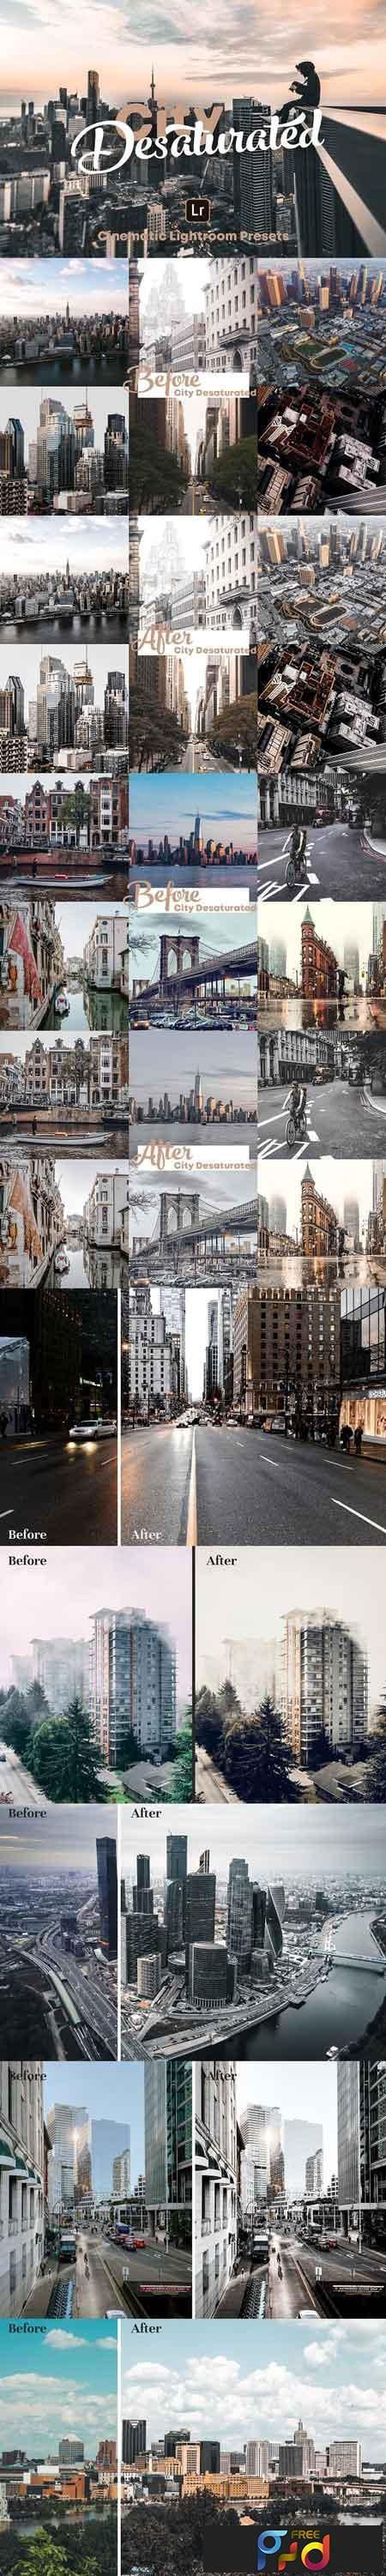 City Desaturated - Lightroom Presets 3064984 1